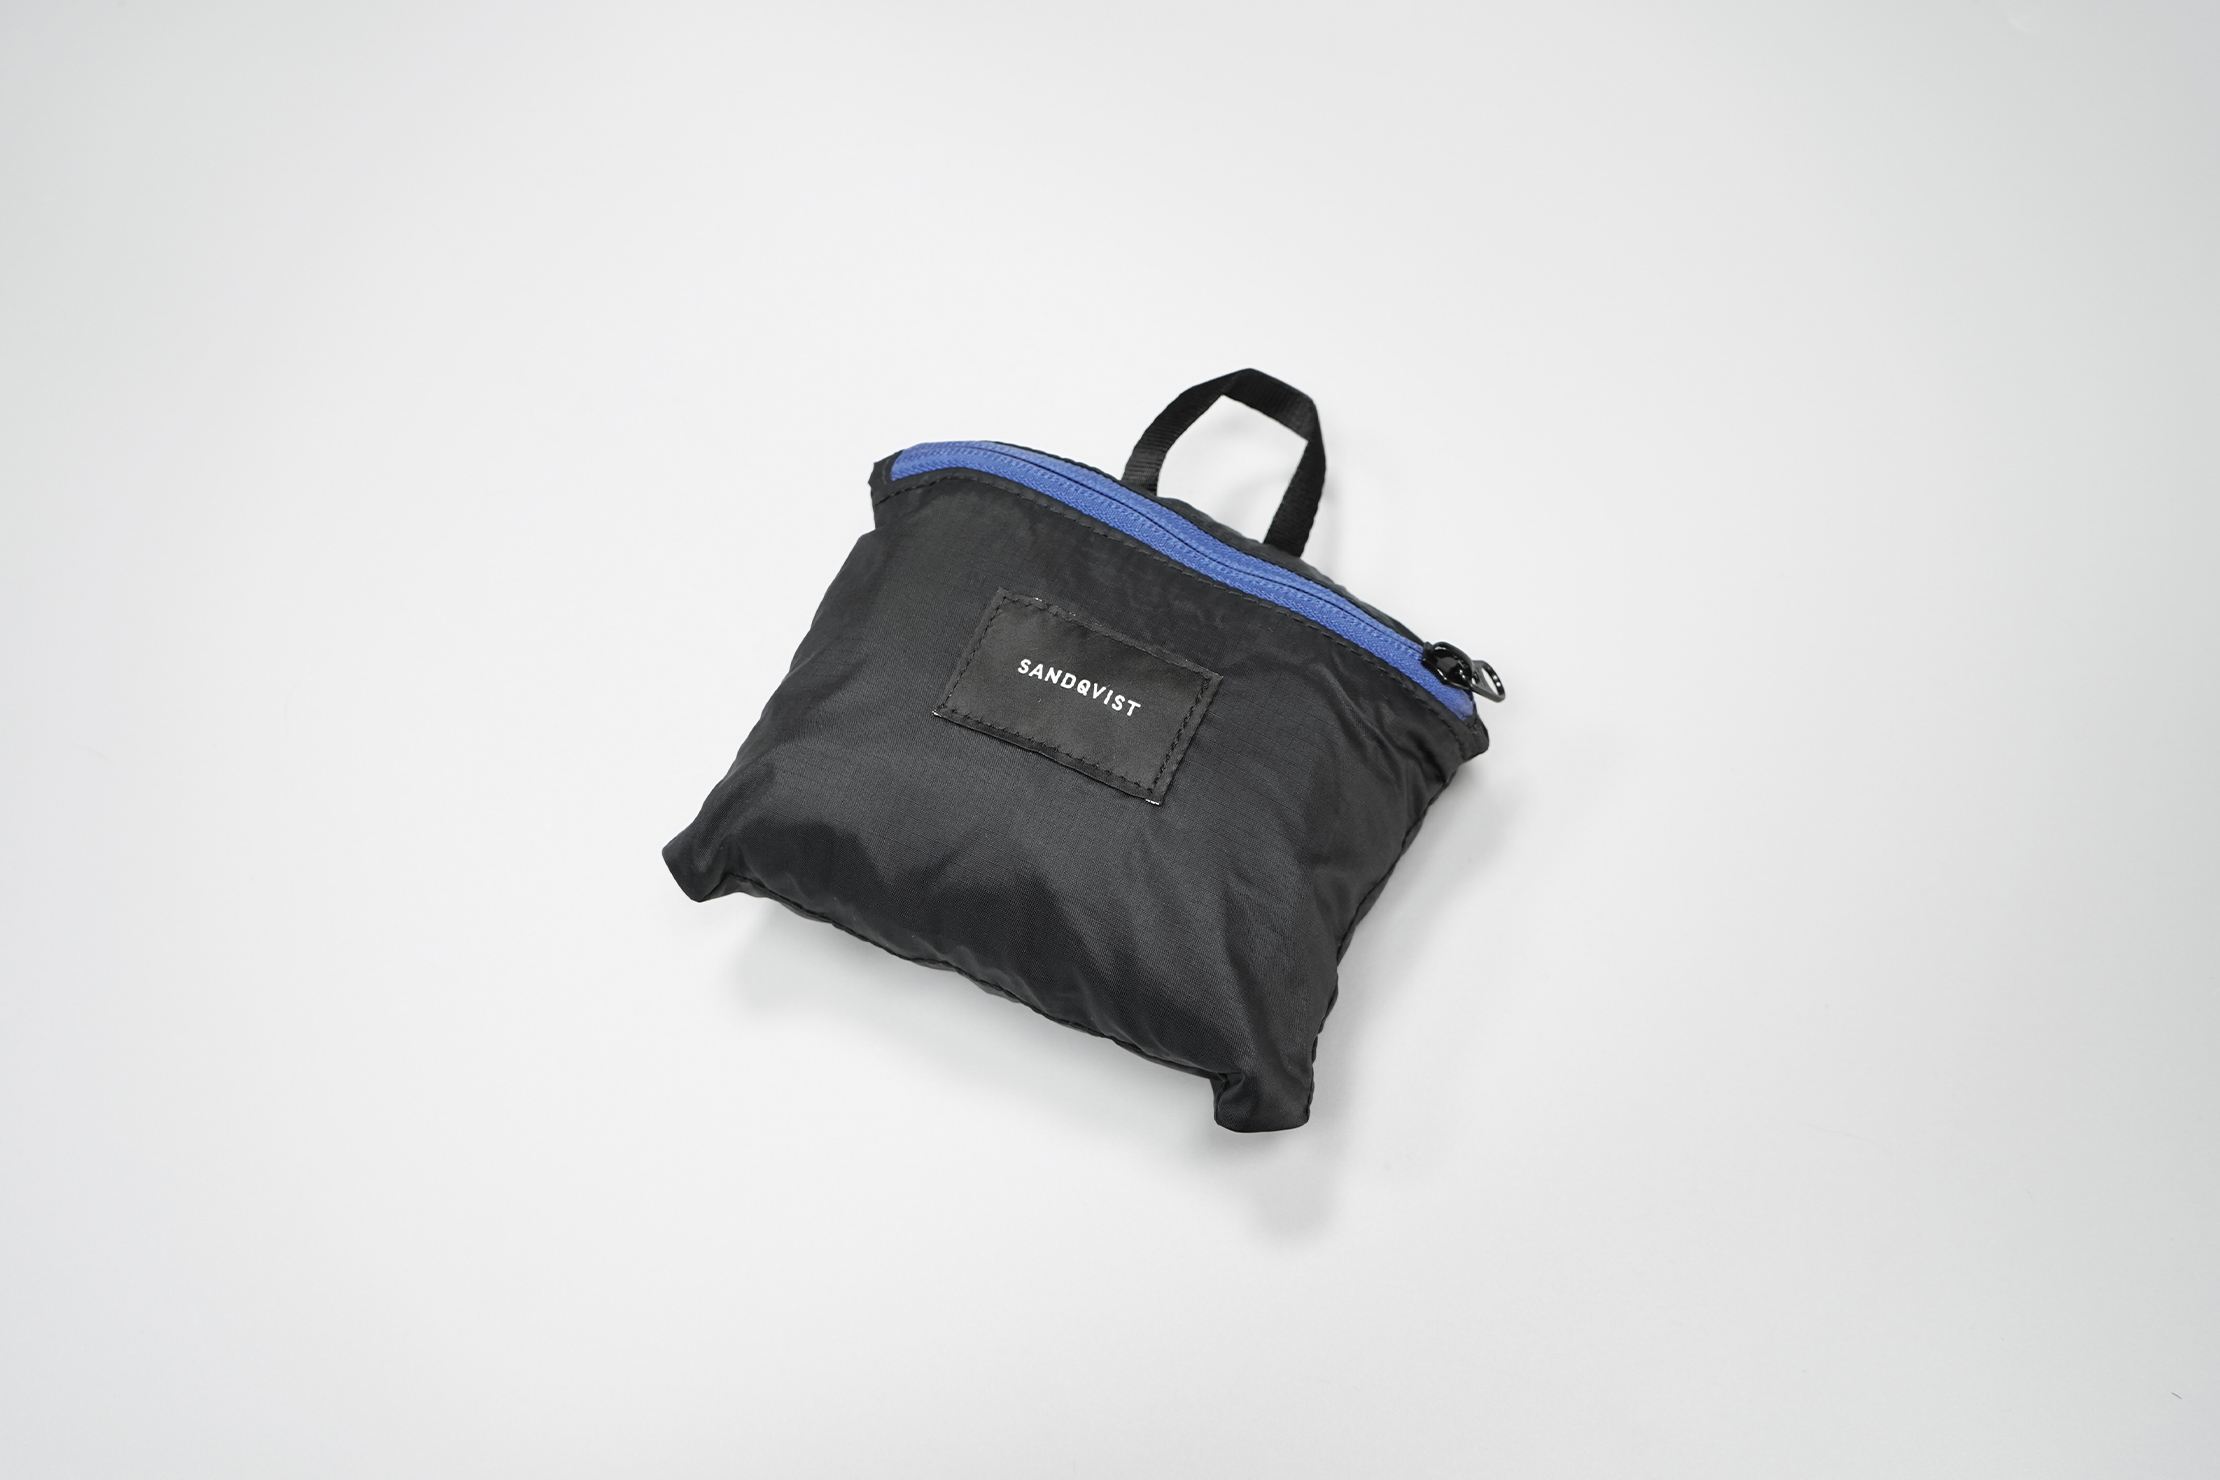 Sandqvist Erland Packable Ziptop Backpack | It compresses down to about half the size of a tech pouch